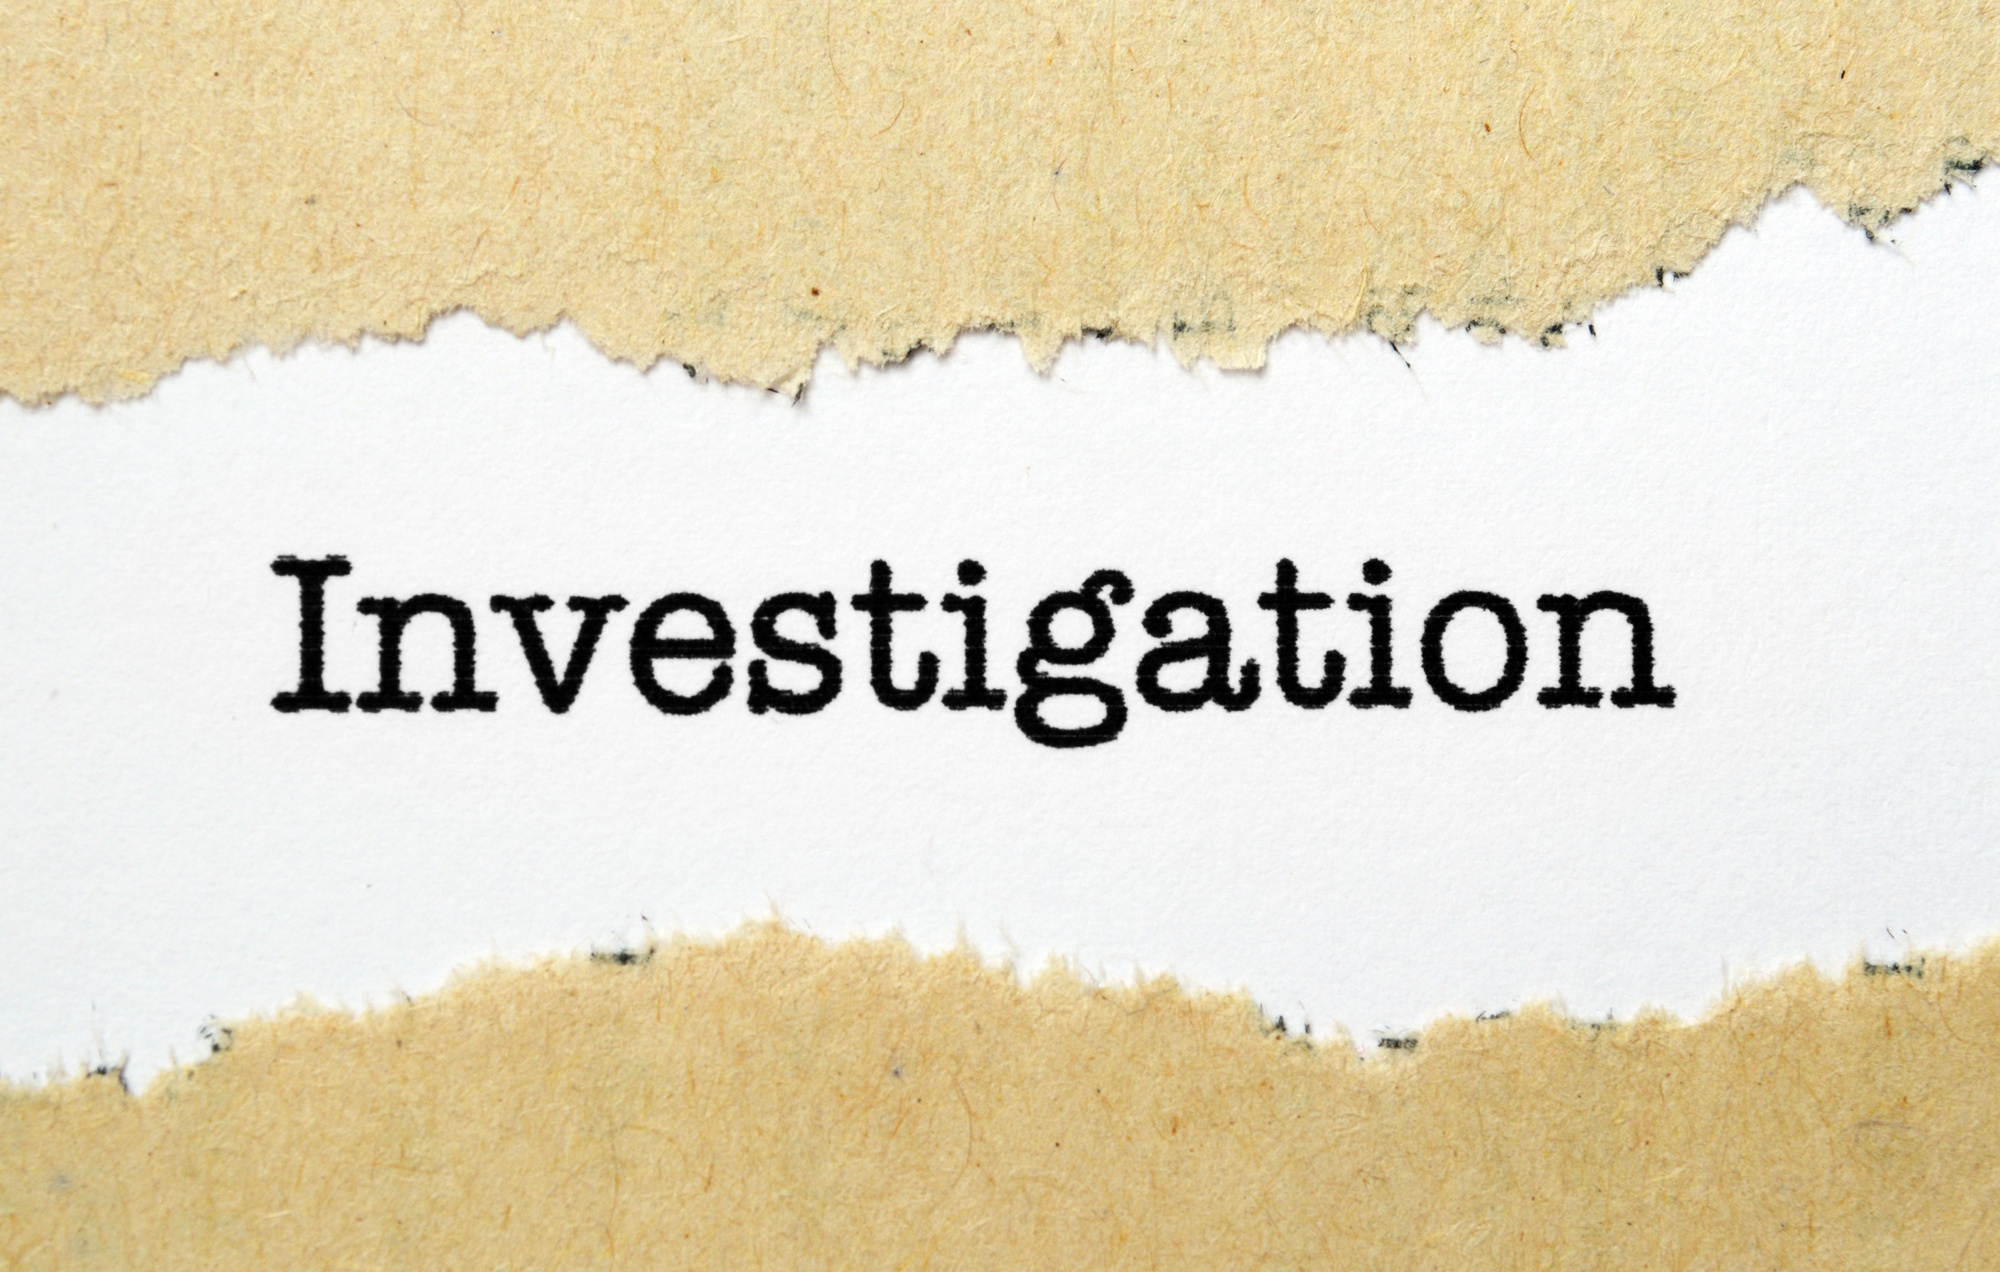 WARNING!  Impending Investigation:  DAVID MICHAEL MILLER and HUNTINGTON INVESTMENT COMPANY